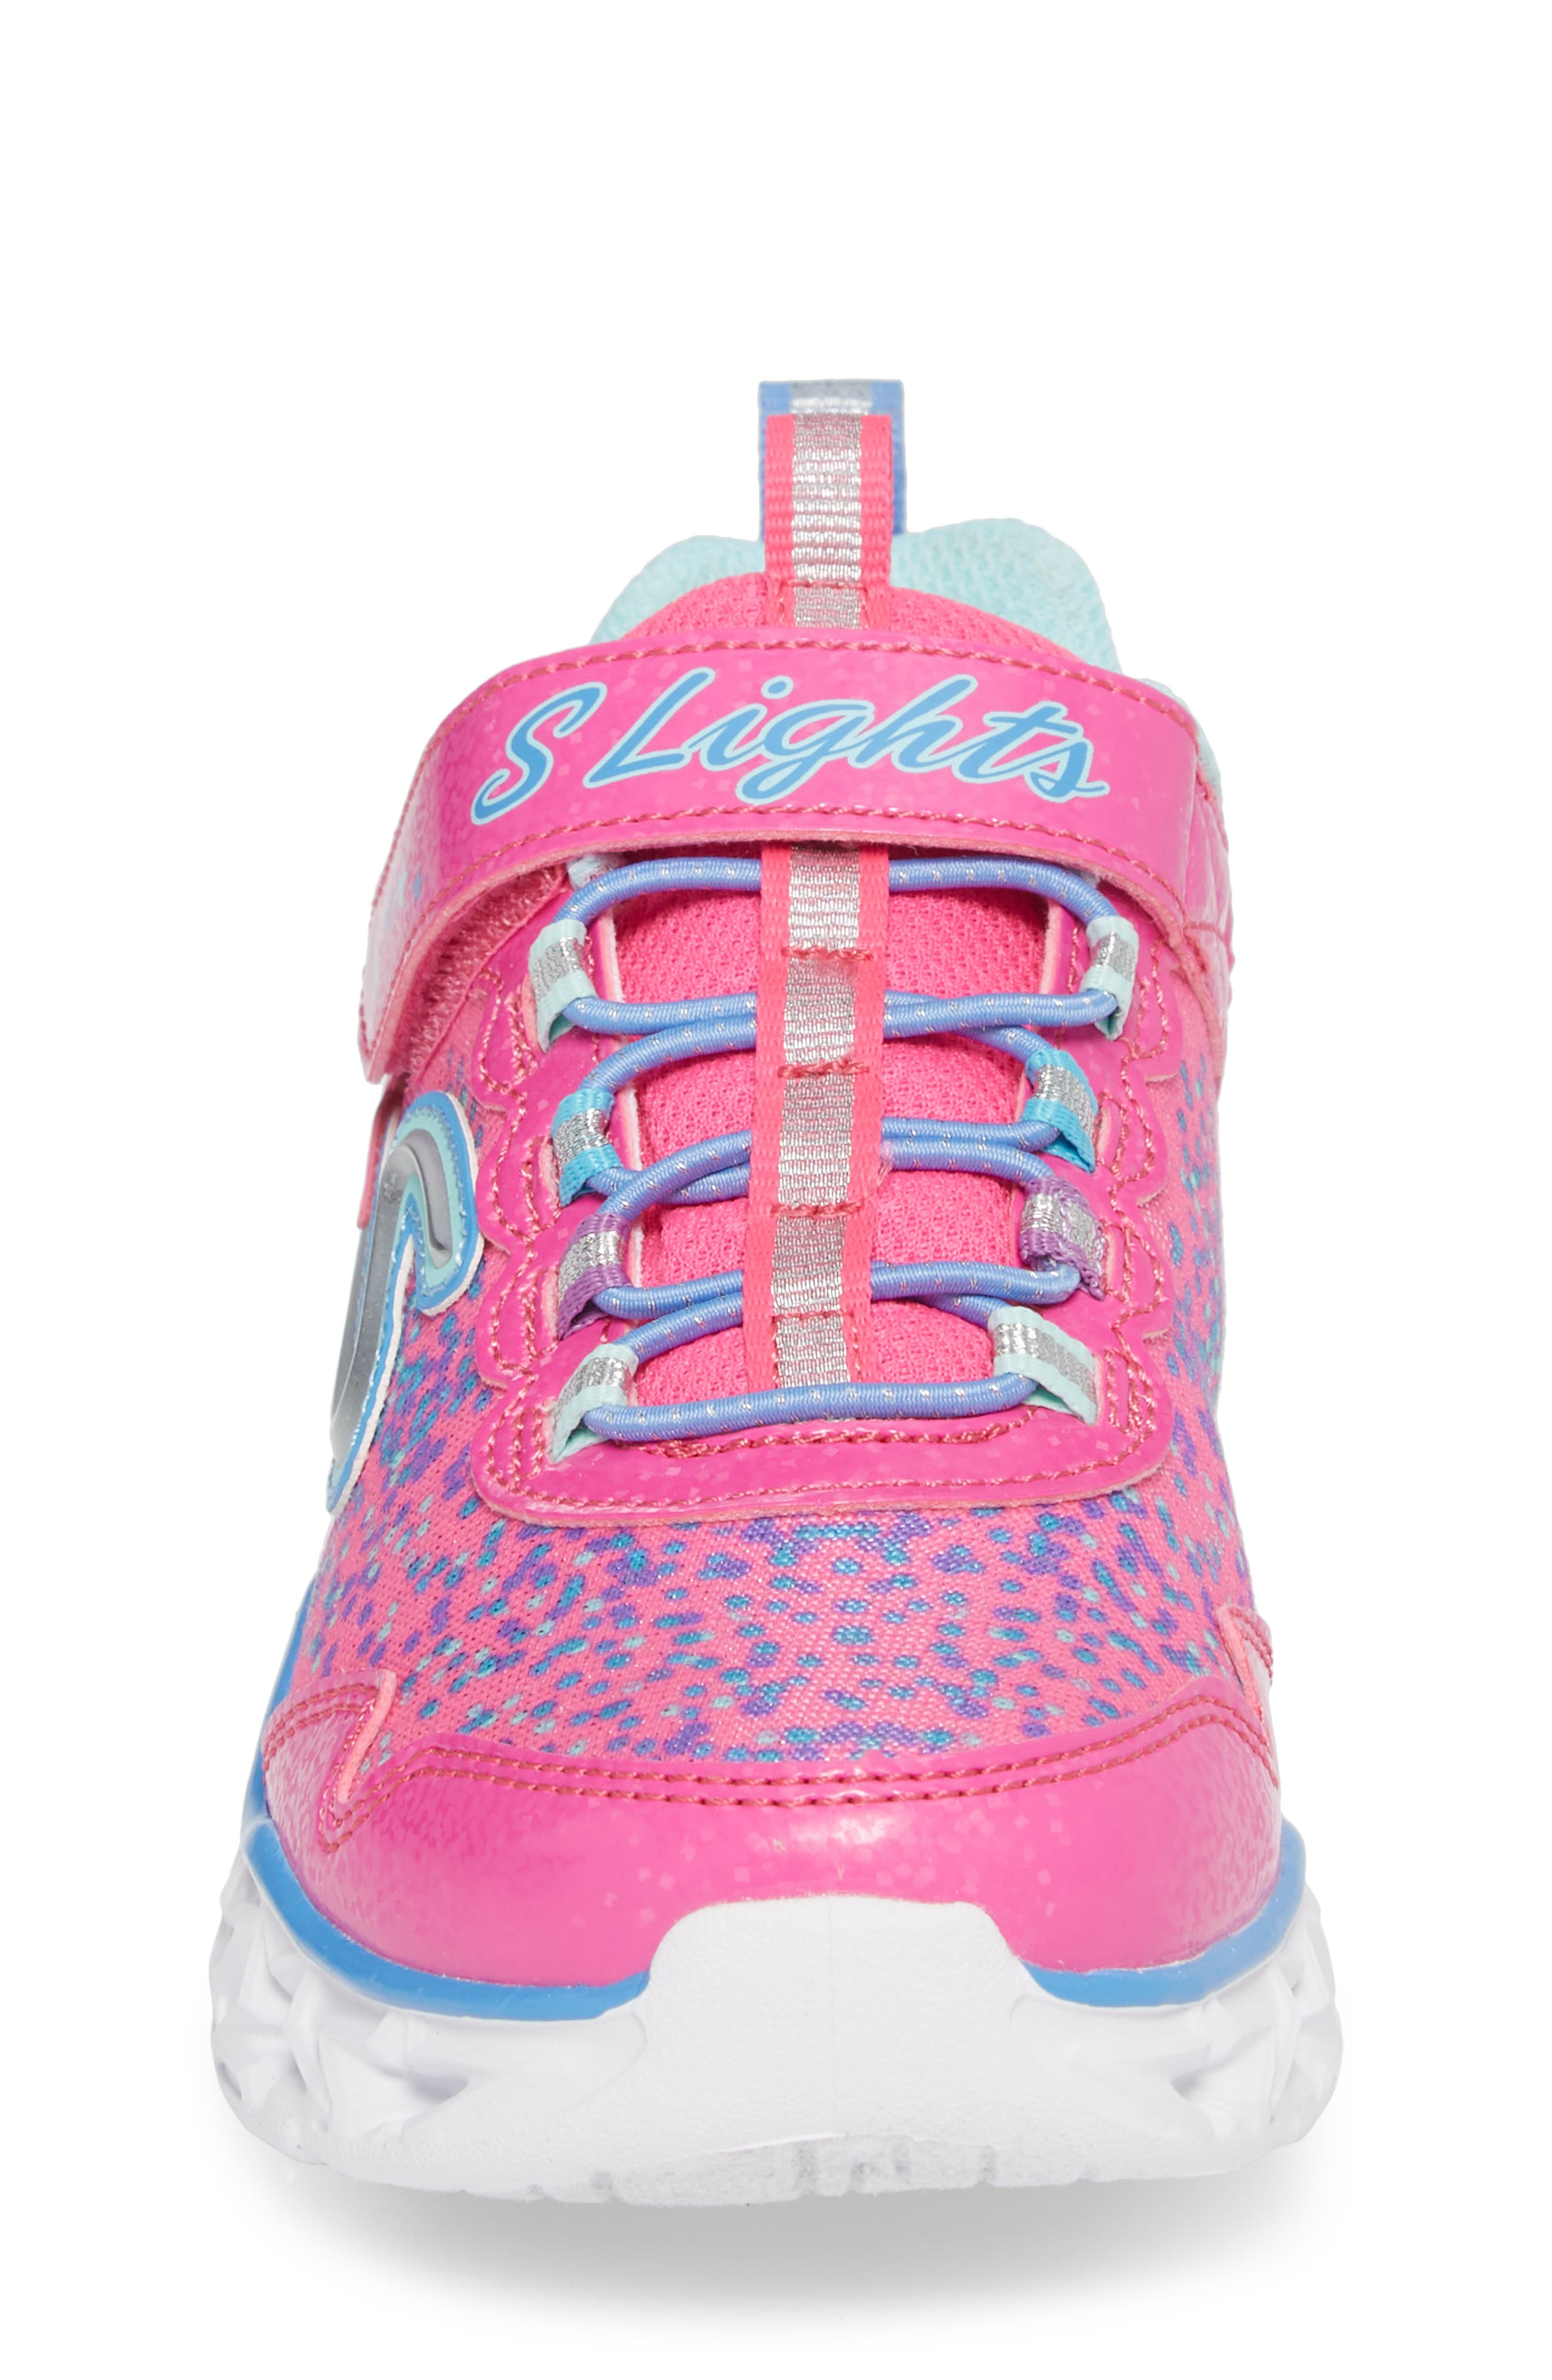 Galaxy Lights Sneakers,                             Alternate thumbnail 4, color,                             Neon Pink/ Multi